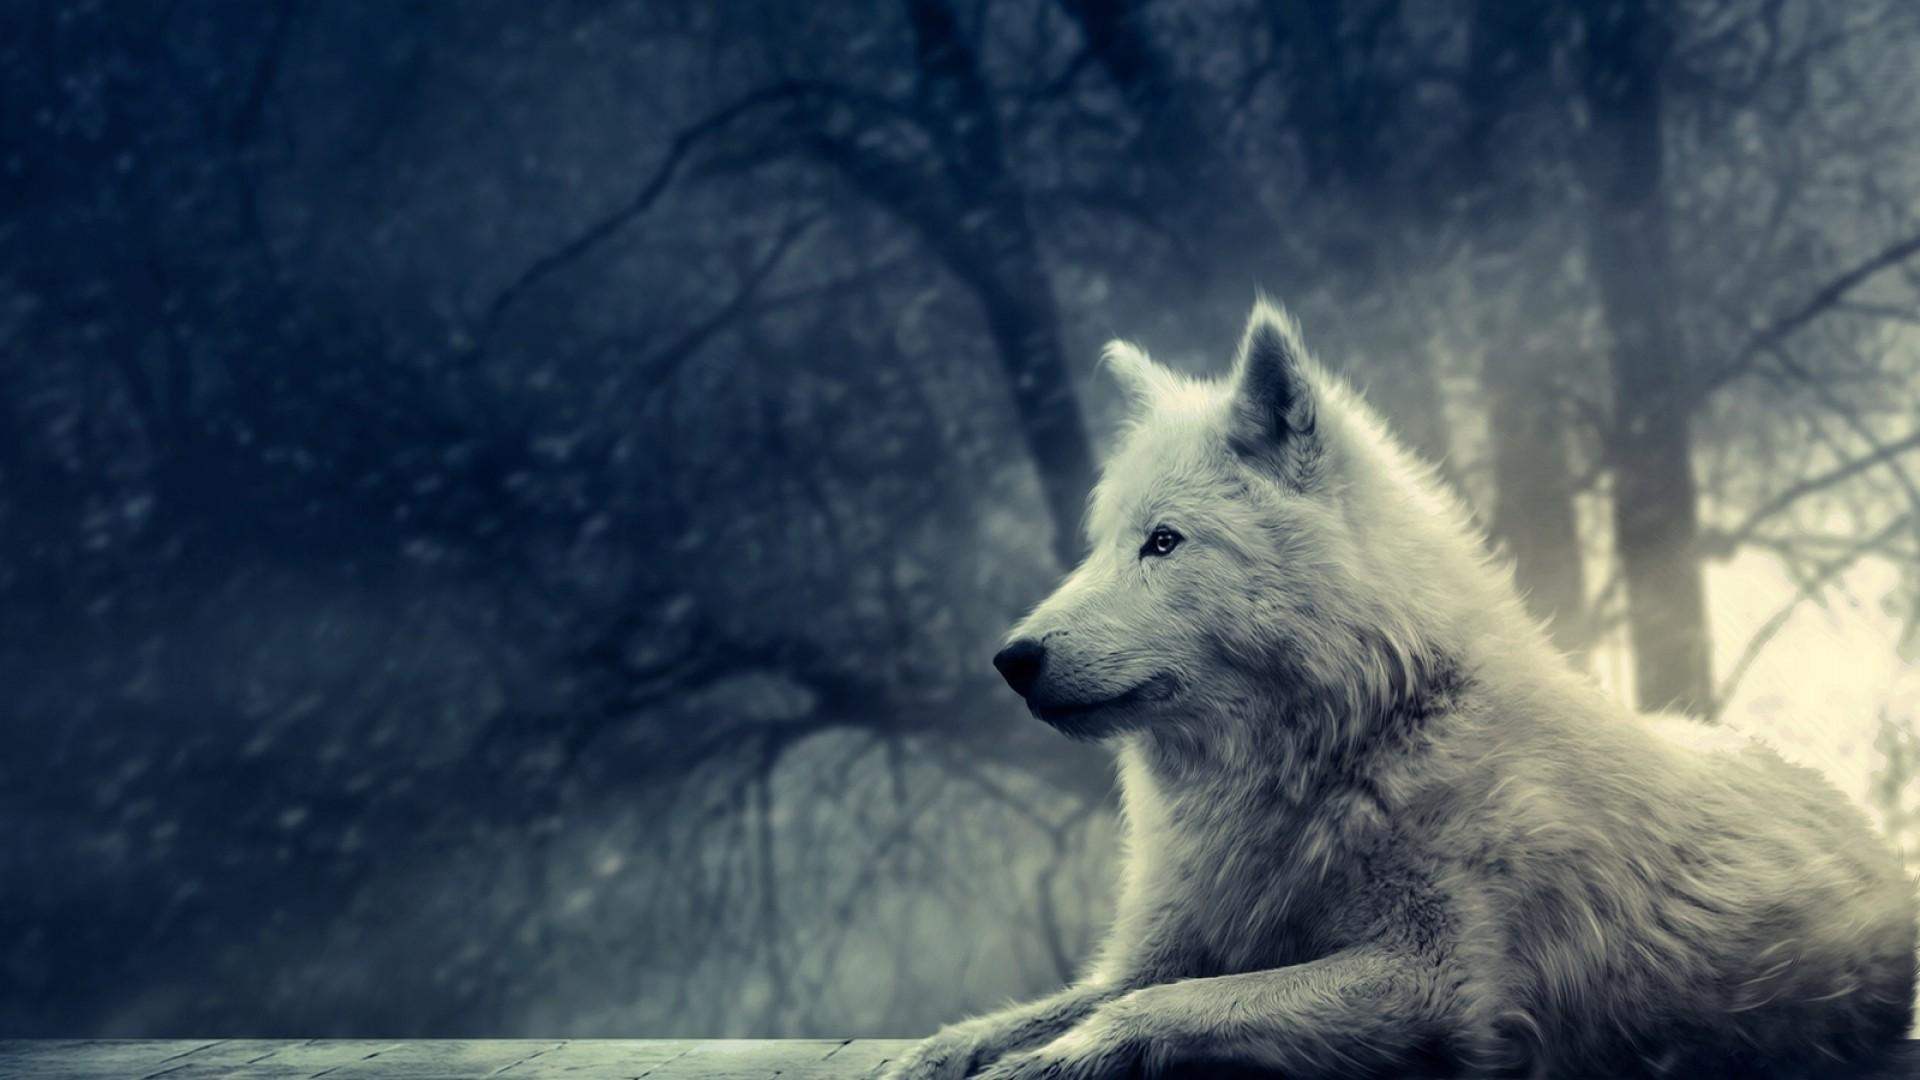 ykv:318 - wolf wallpapers, wolf hd pictures - 31 free large images